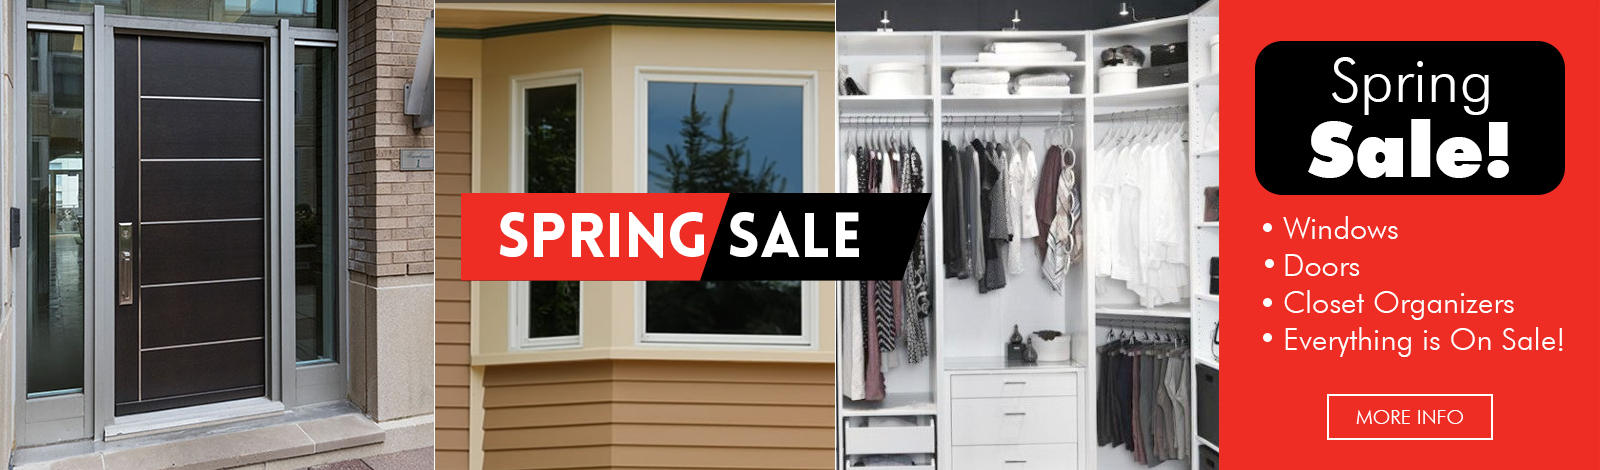 Kobyco Windows and Doors Spring Sale! Replacement windows, doors, entry doors, patio doors, sliding doors, closet organizers, retractable awnings, crown molding